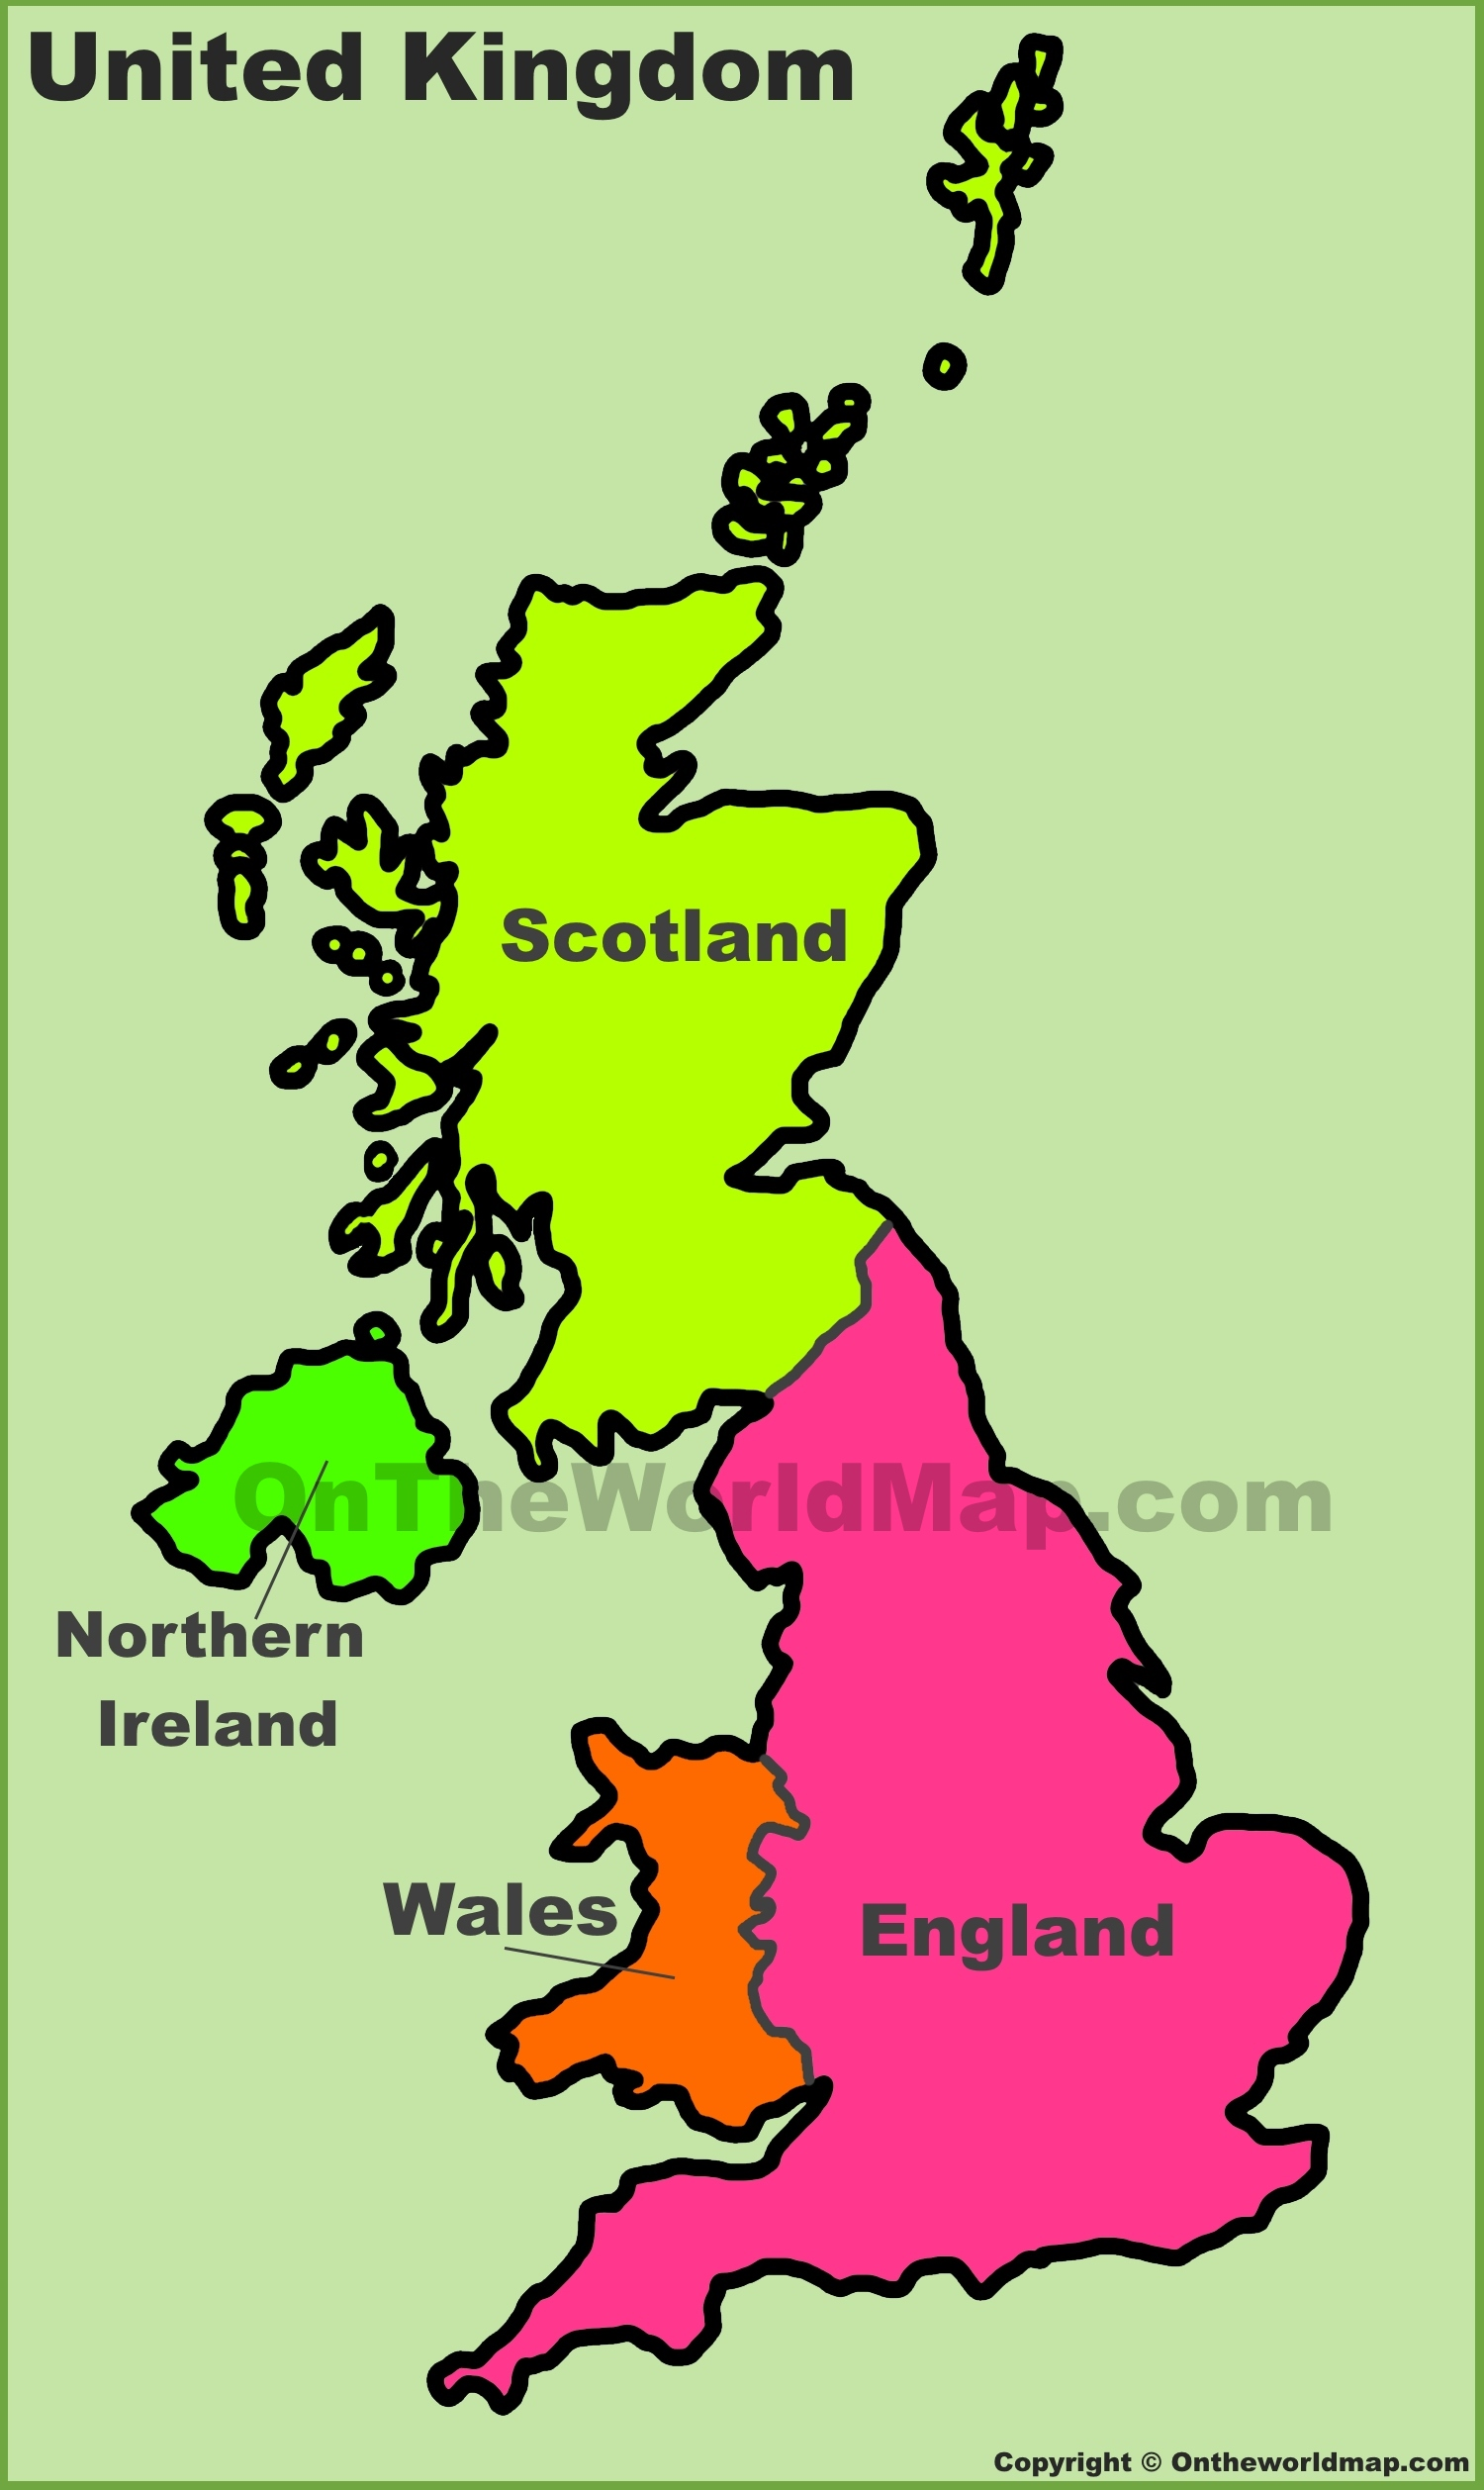 UK Maps | Maps of United Kingdom of Great Britain and Northern ...